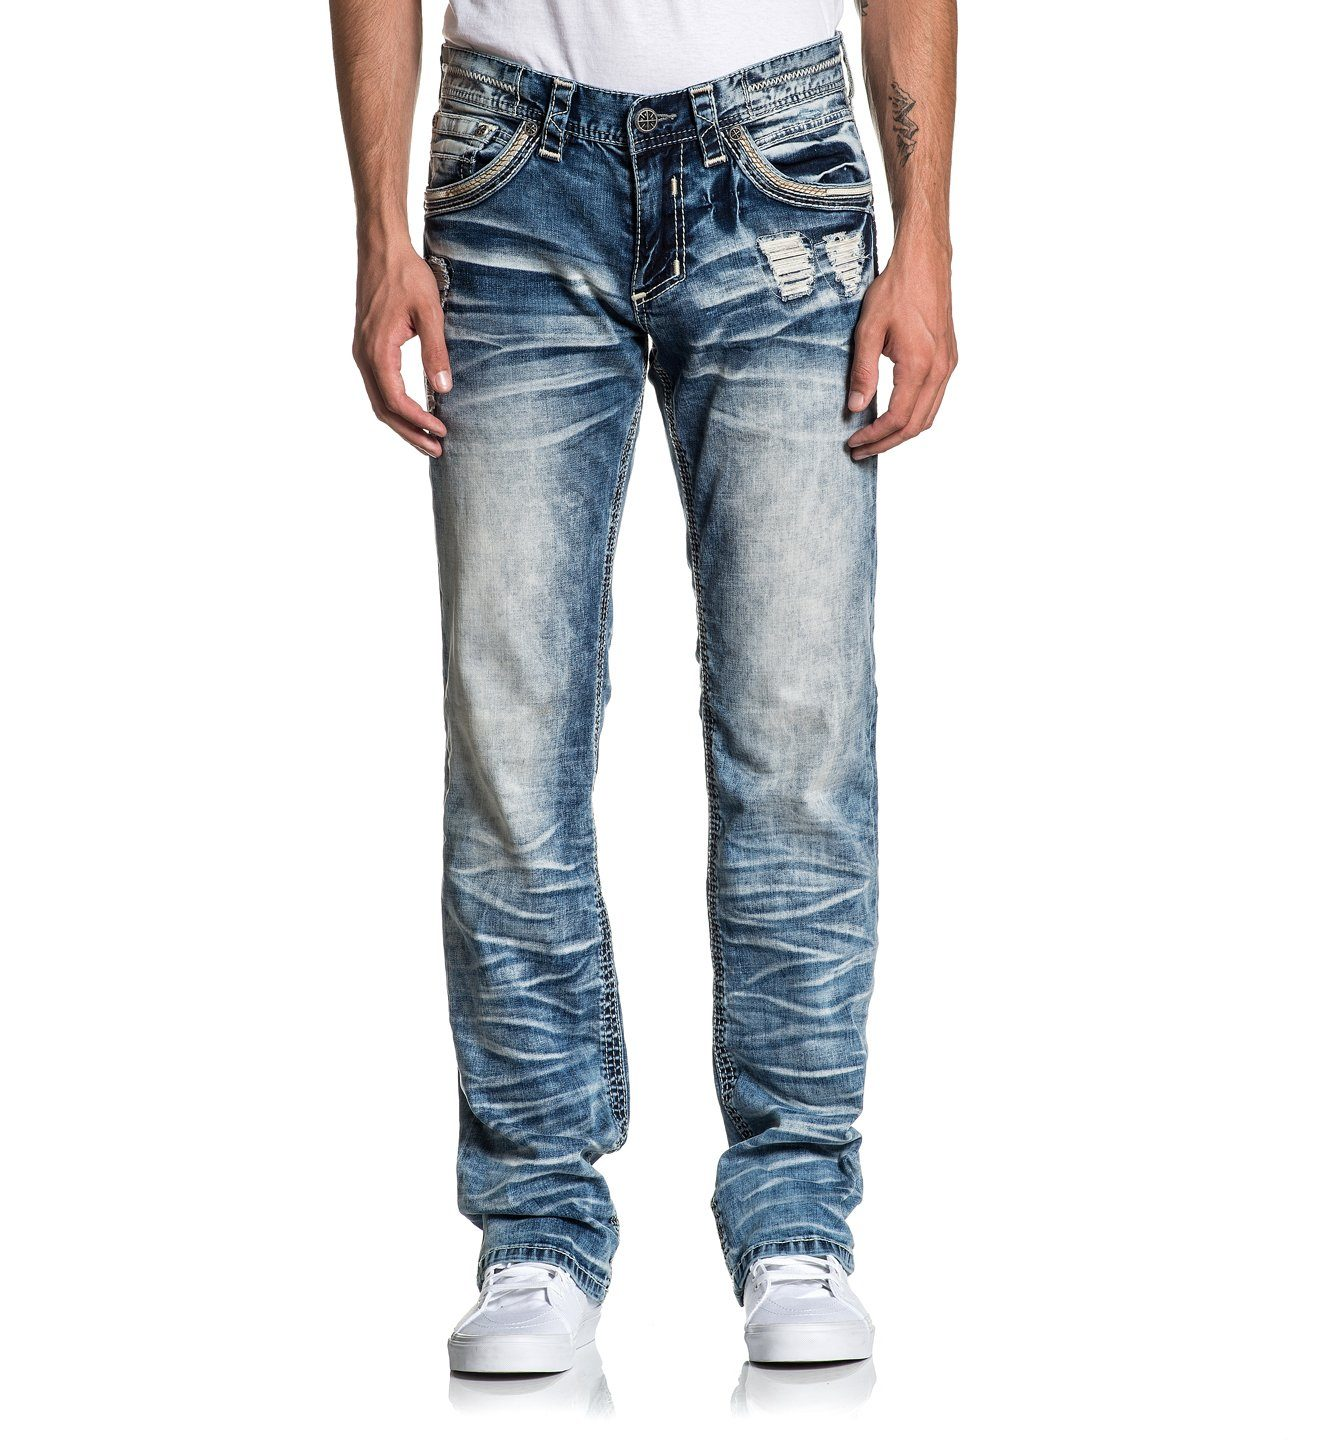 Blake Fleur Ruston - Mens Denim Bottoms - Affliction Clothing